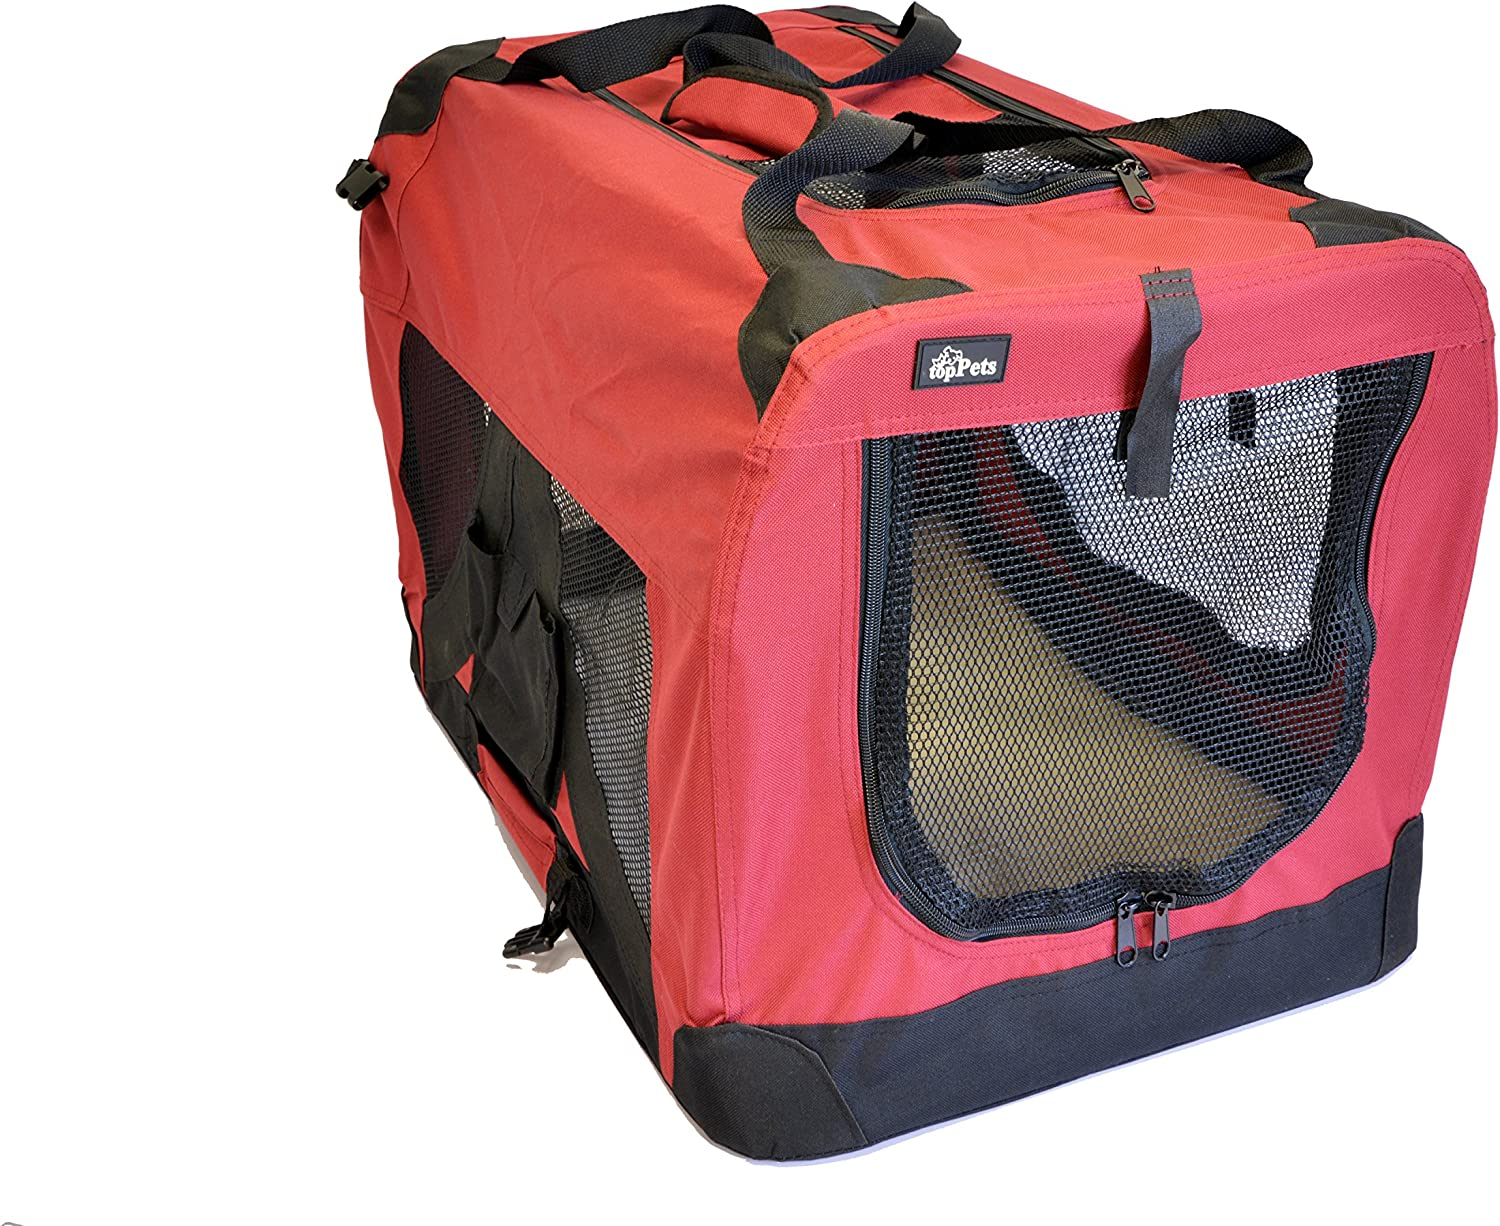 Kaylaism Red SoftSided Medium Folding Pet Travel Carrier Crate